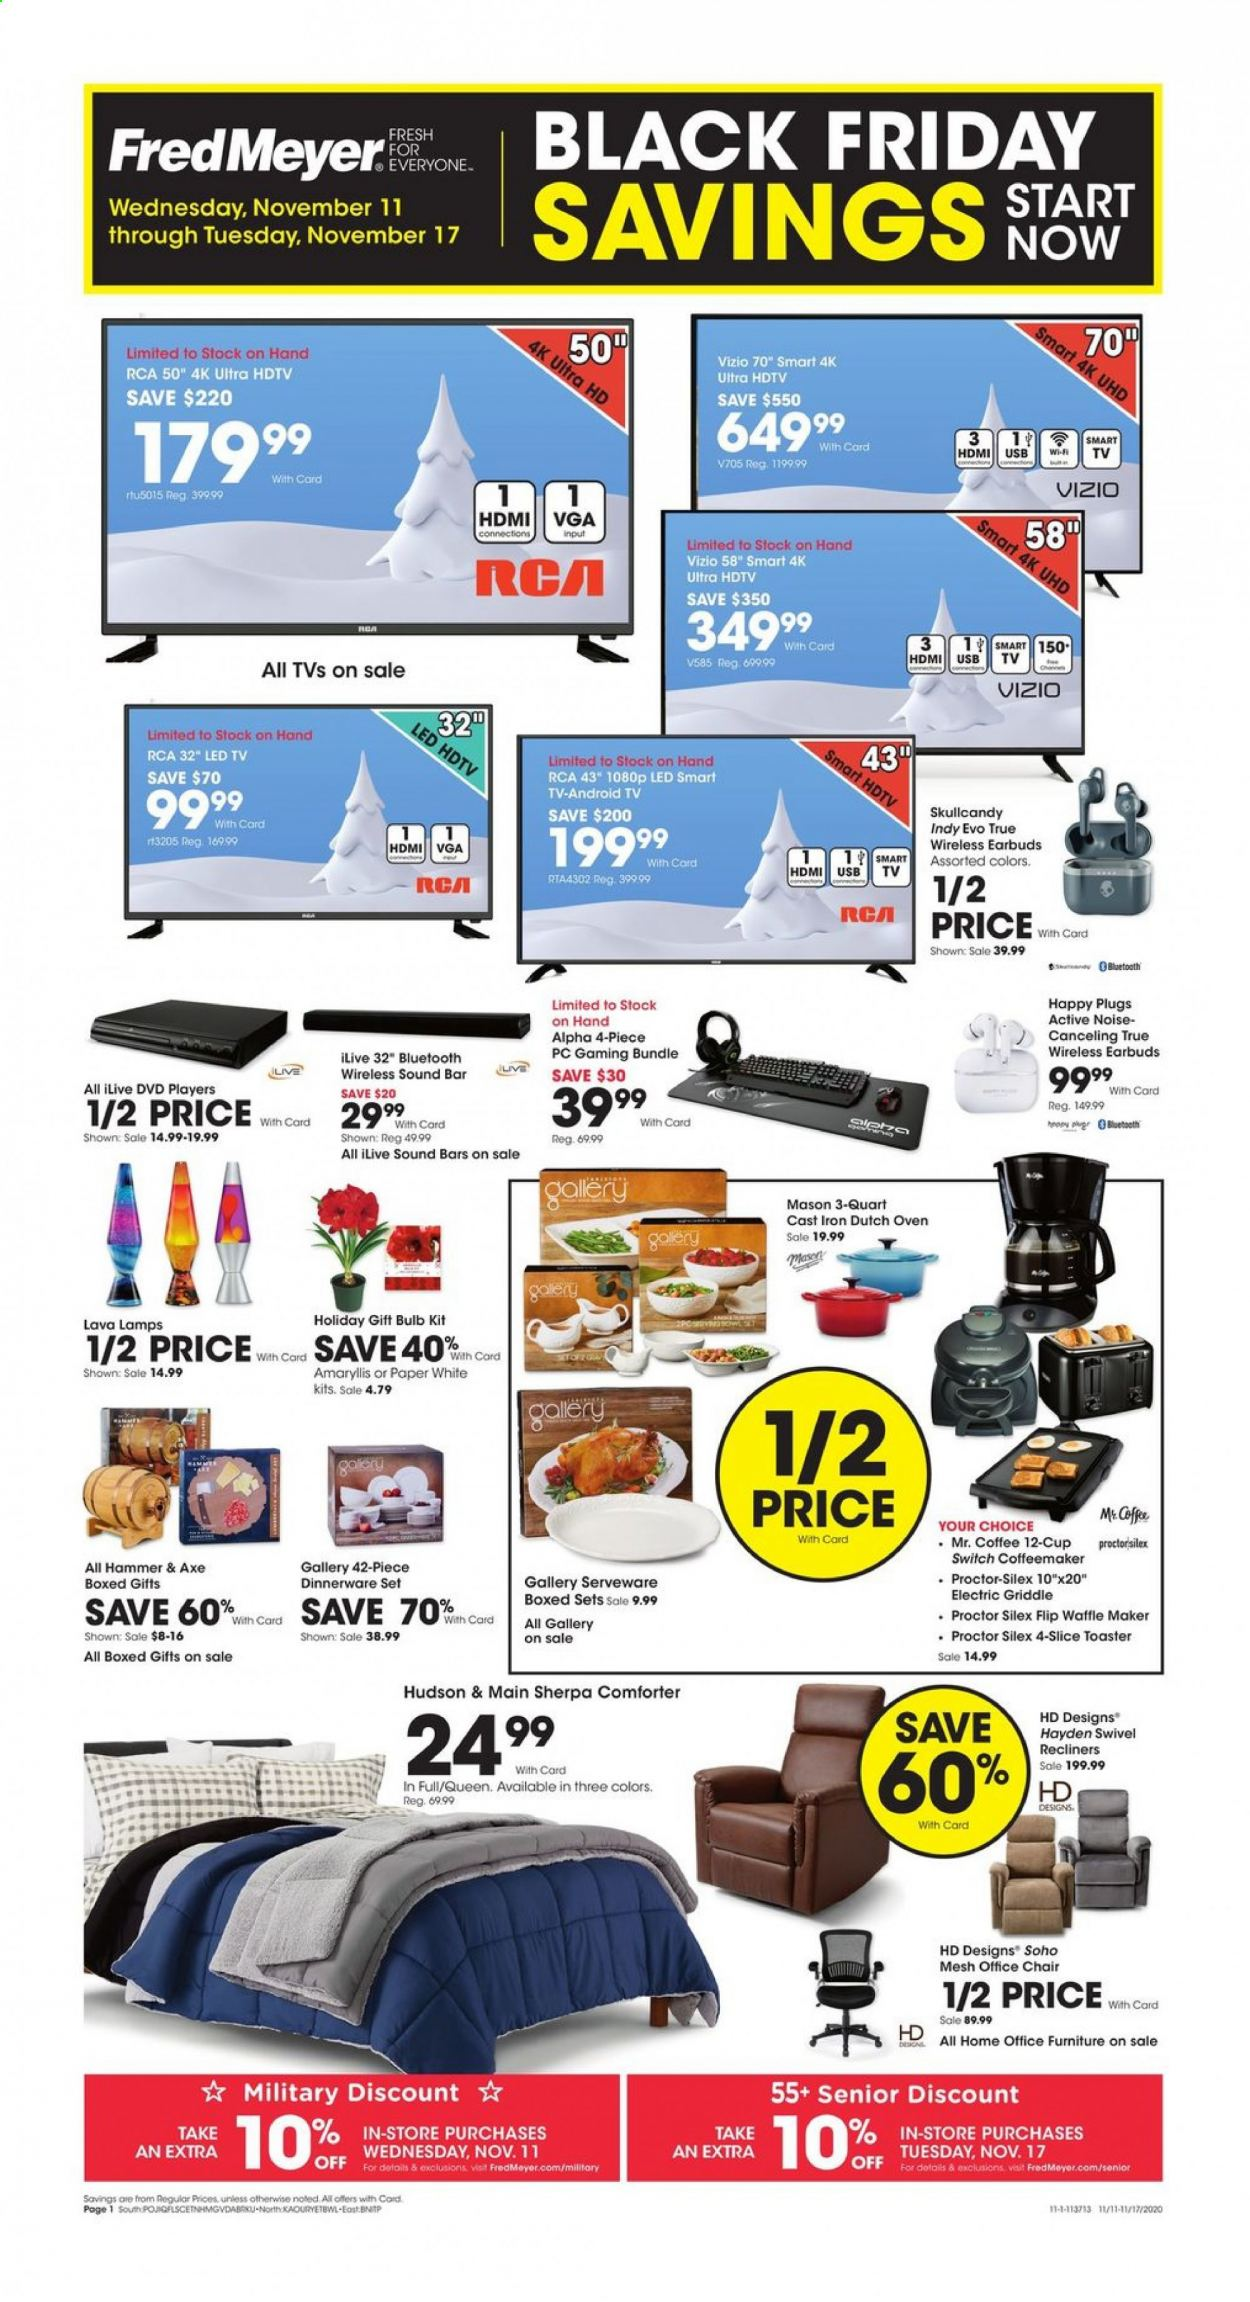 Fred Meyer Flyer - 11.11.2020 - 11.17.2020 - Sales products - Android TV, axe, bulb, coffee, dinnerware set, dvd, comforter, Furniture, lamp, LED TV, rca, sherpa, Skullcandy, smart tv, switch, uhd tv, ultra hd, Vizio, wifi, hdtv, chair, iron, oven, hammer, toaster, waffle maker, office chair, USB, led. Page 1.